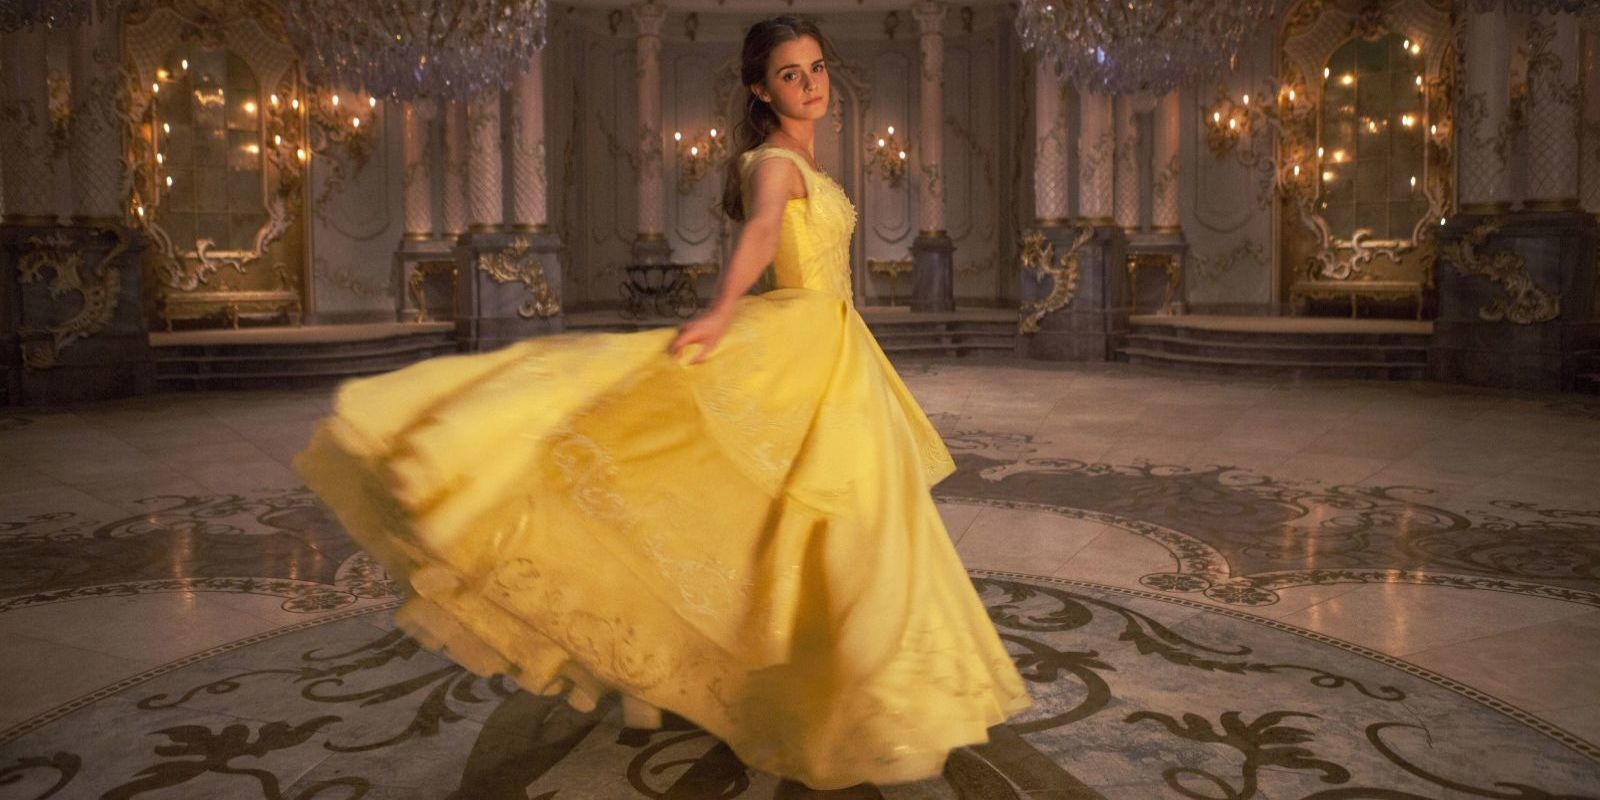 Disney Releases New Official Clip of Emma Watson Singing in 'Beauty and the Beast'